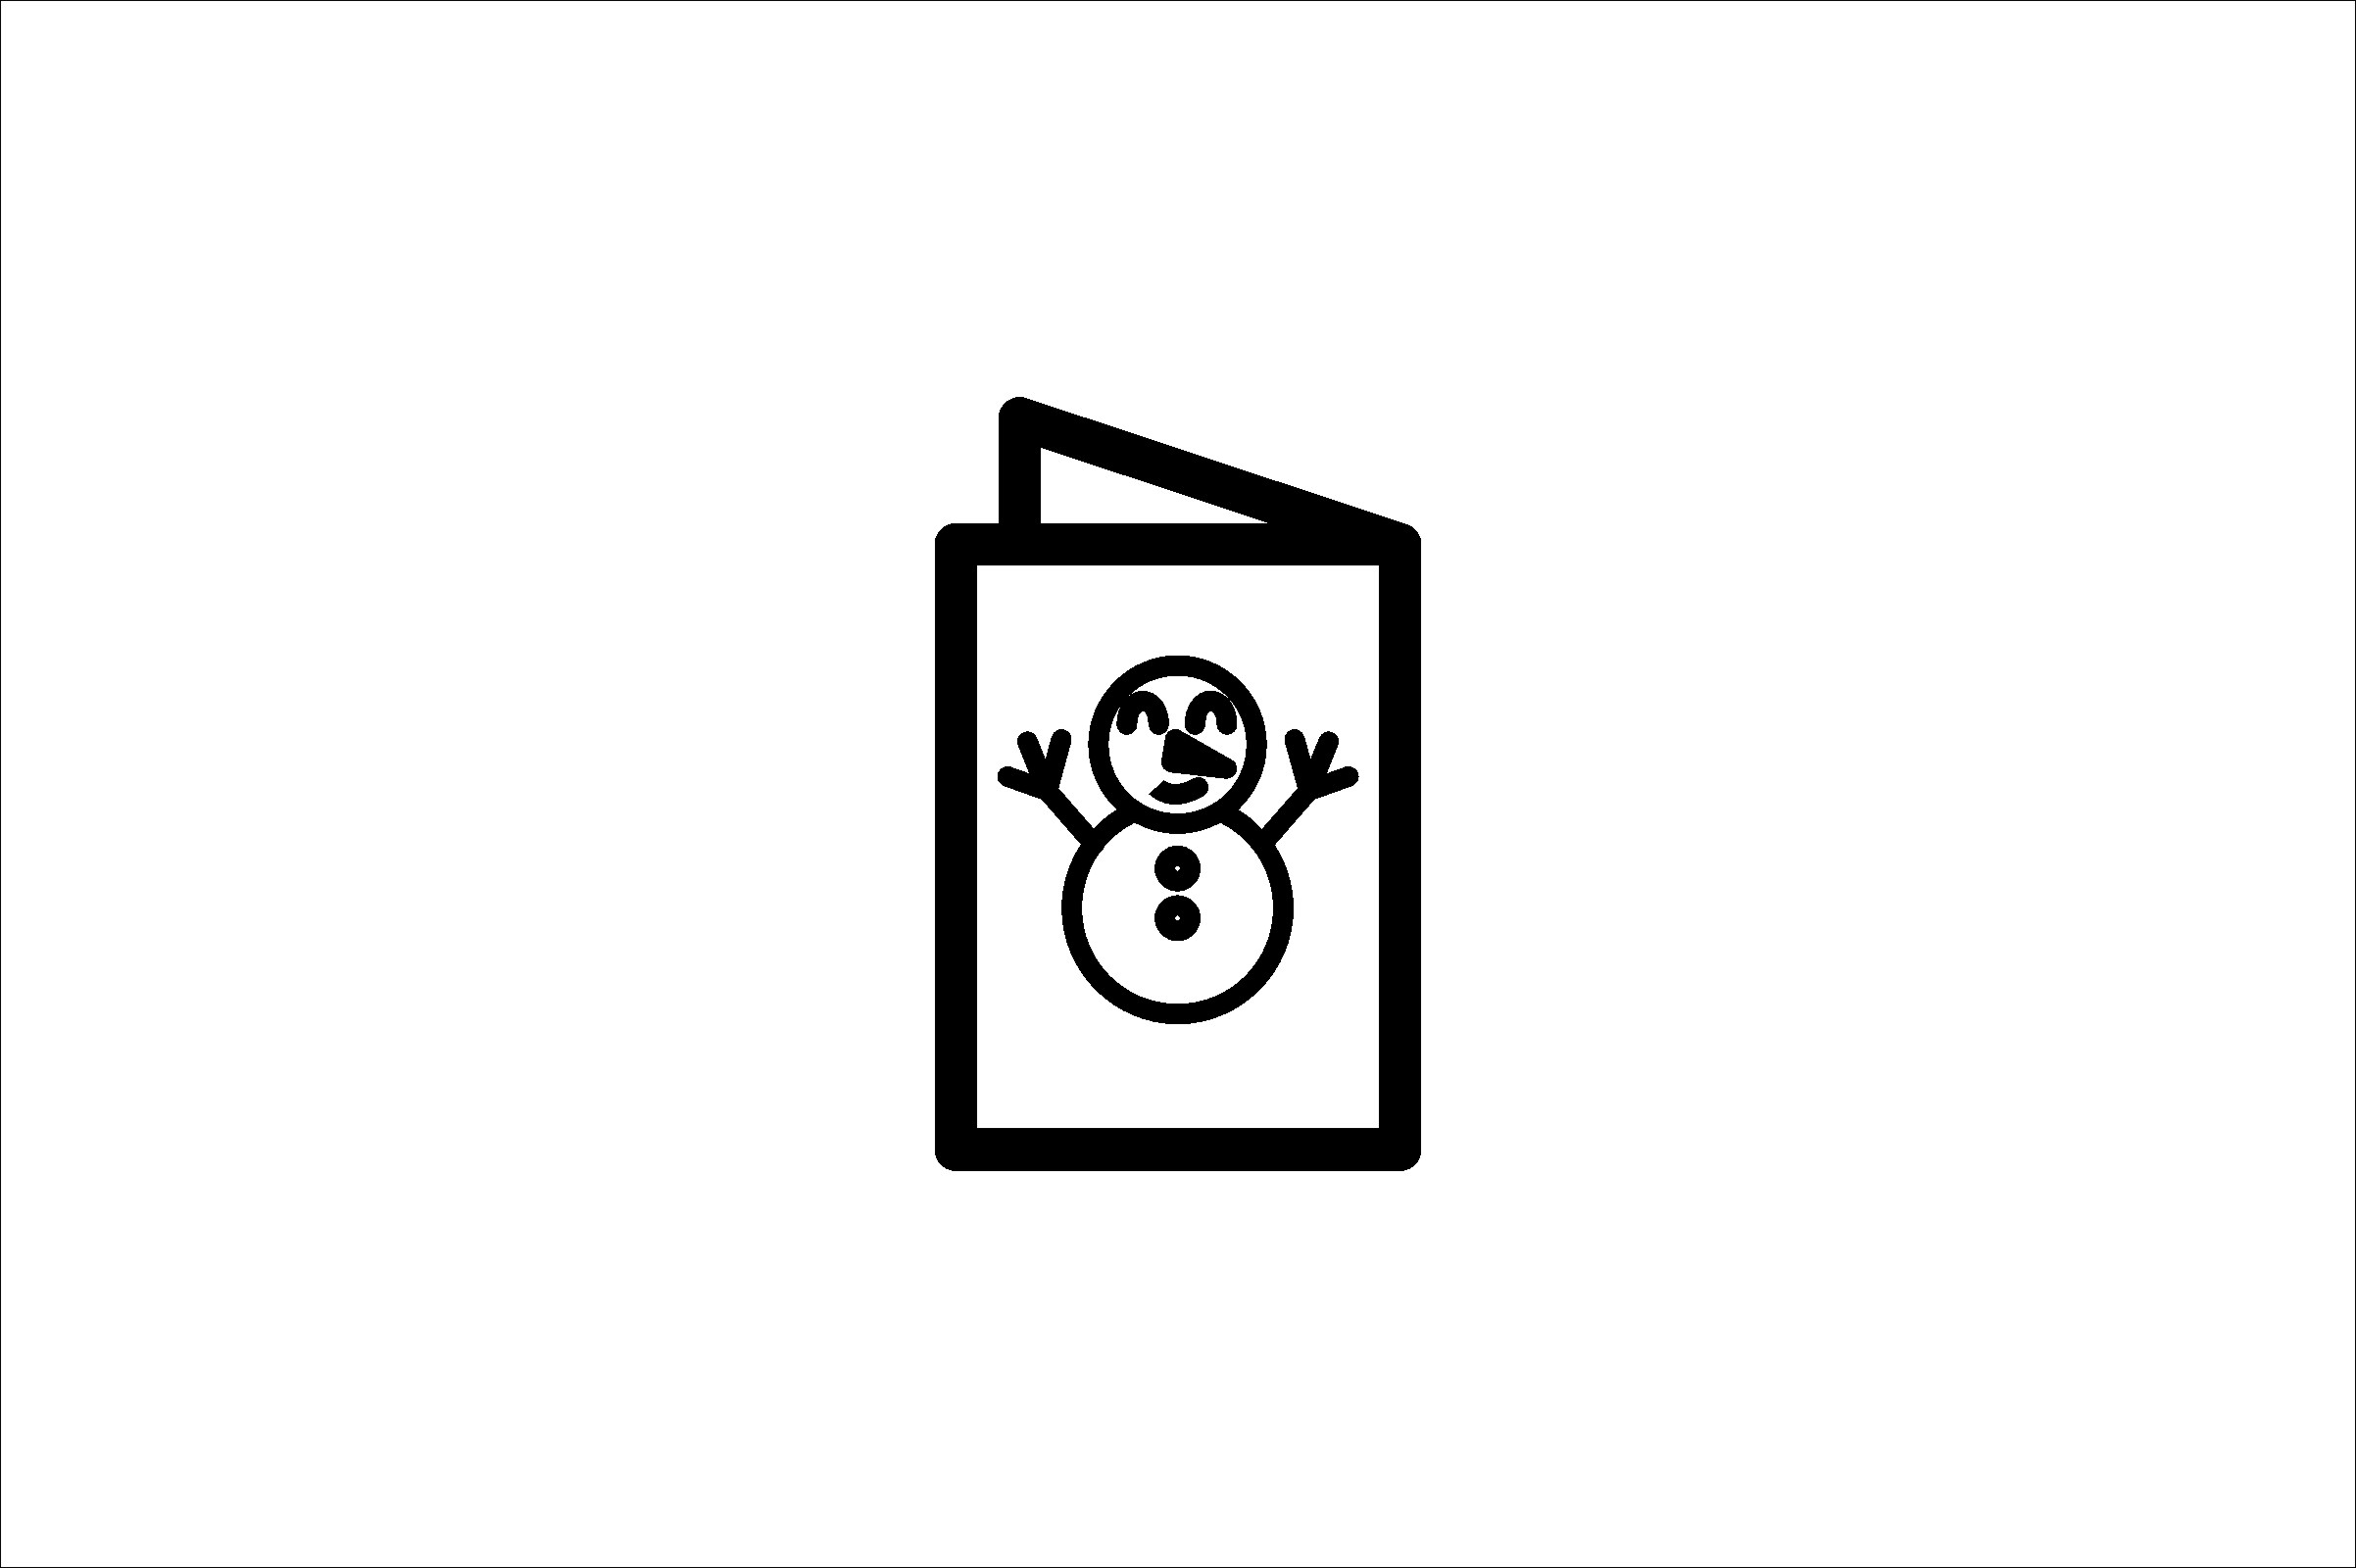 Download Free Christmas Icon Graphic By Aufi1204 Creative Fabrica for Cricut Explore, Silhouette and other cutting machines.